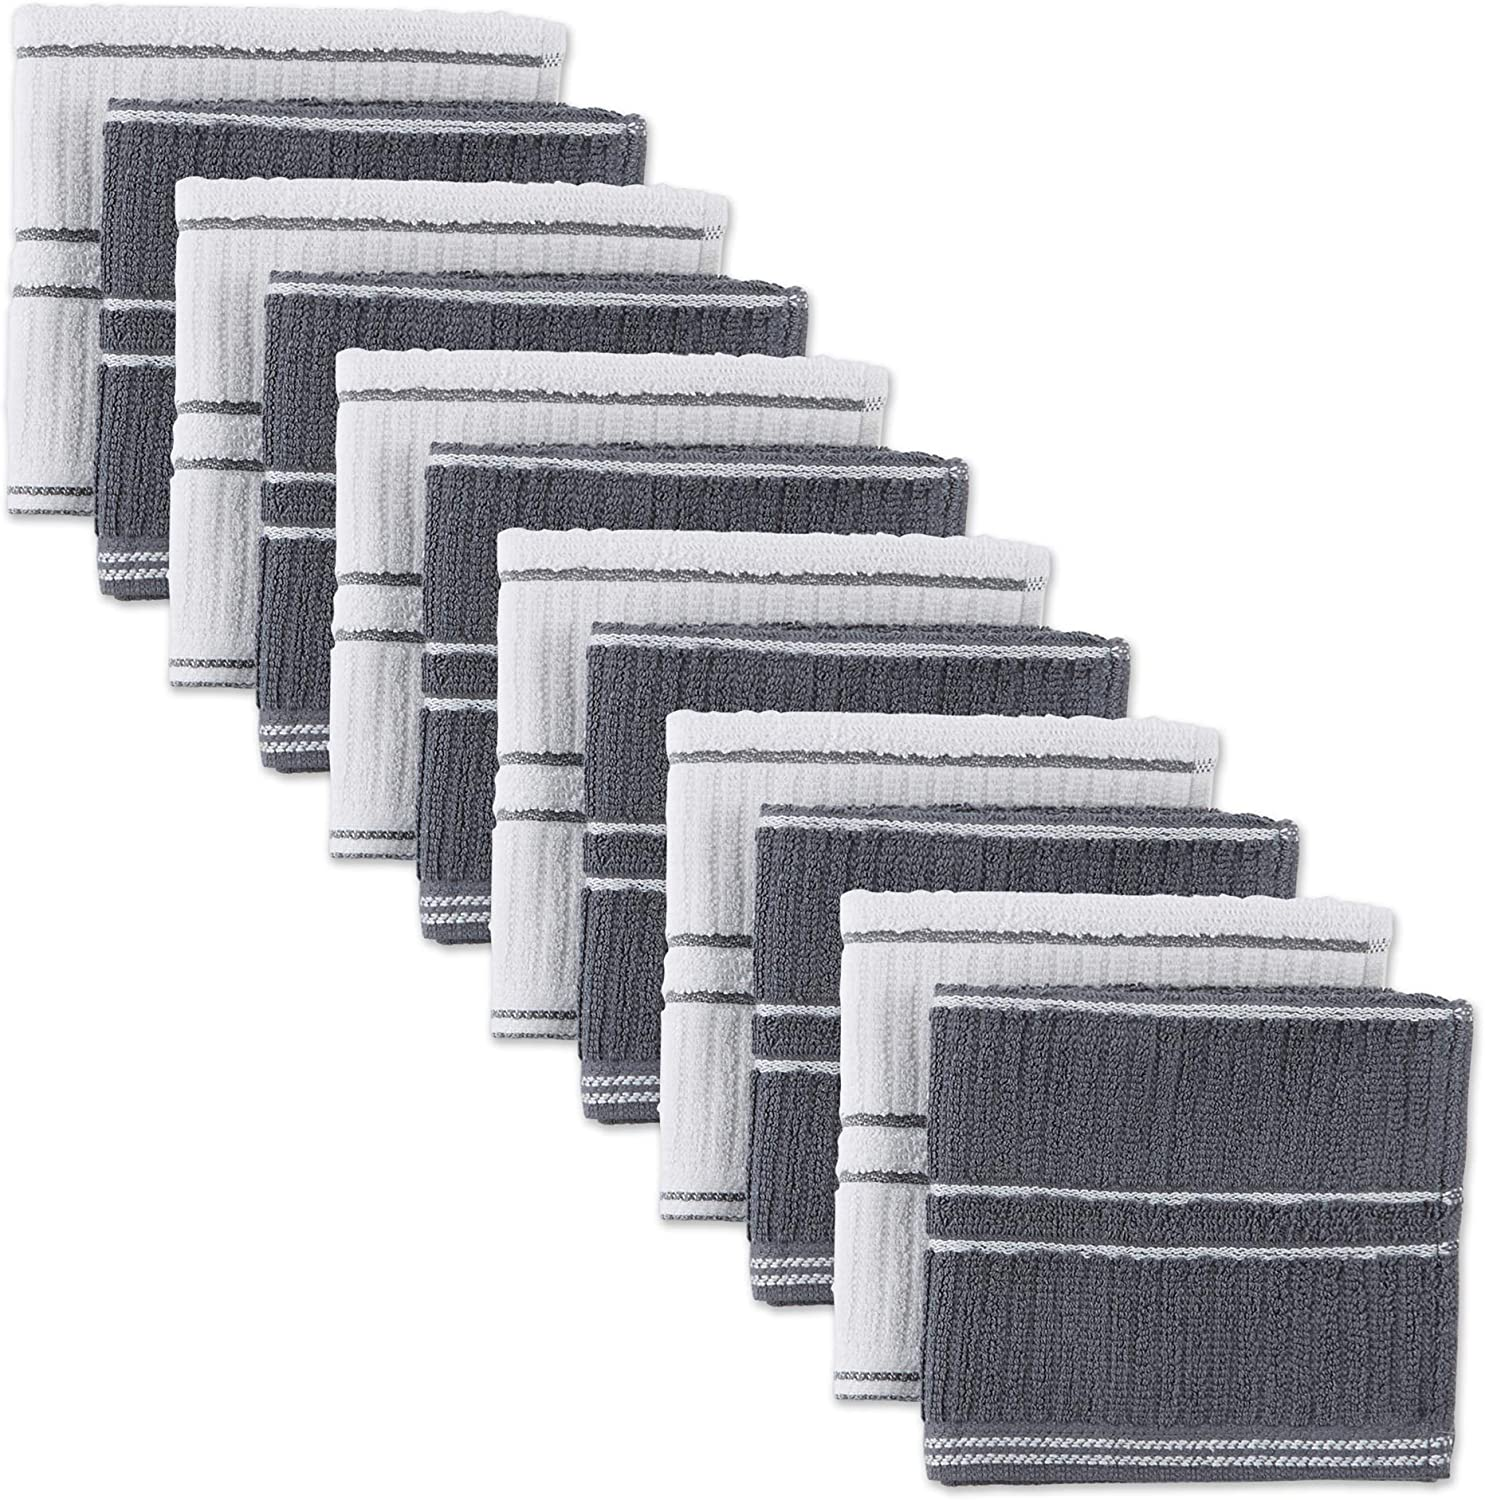 J&M Home Fashions 70316A Cotton Ribbed Terry Dish Absorbent Durable Drying Cleaning Kitchen Cloths, 13x13, Gray 12 Pack